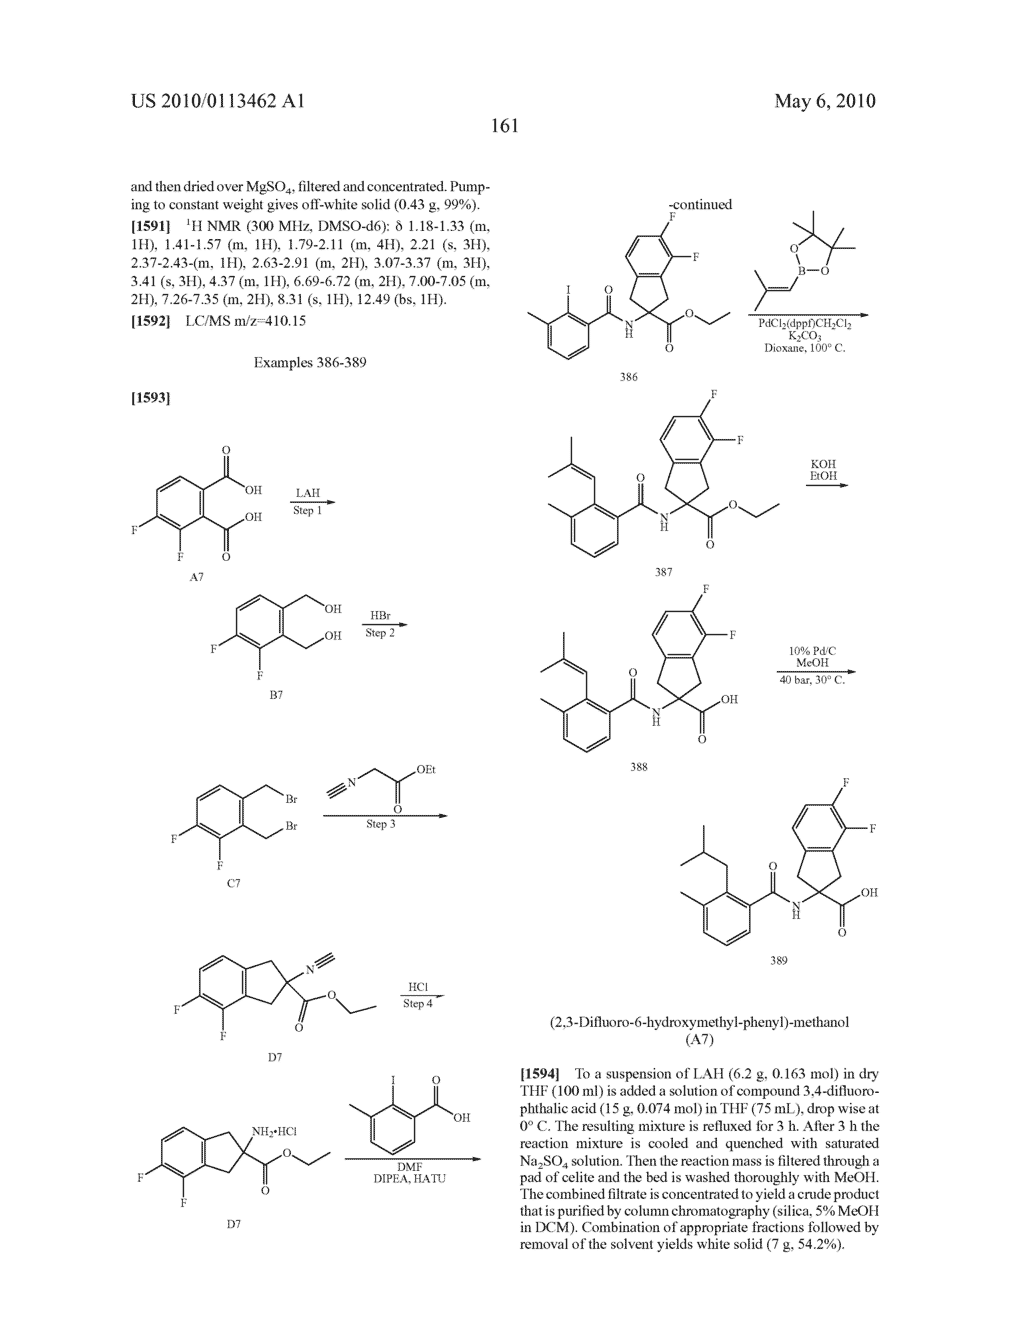 SUBSTITUTED BENZOYLAMINO-INDAN-2-CARBOXYLIC ACIDS AND RELATED COMPOUNDS - diagram, schematic, and image 162